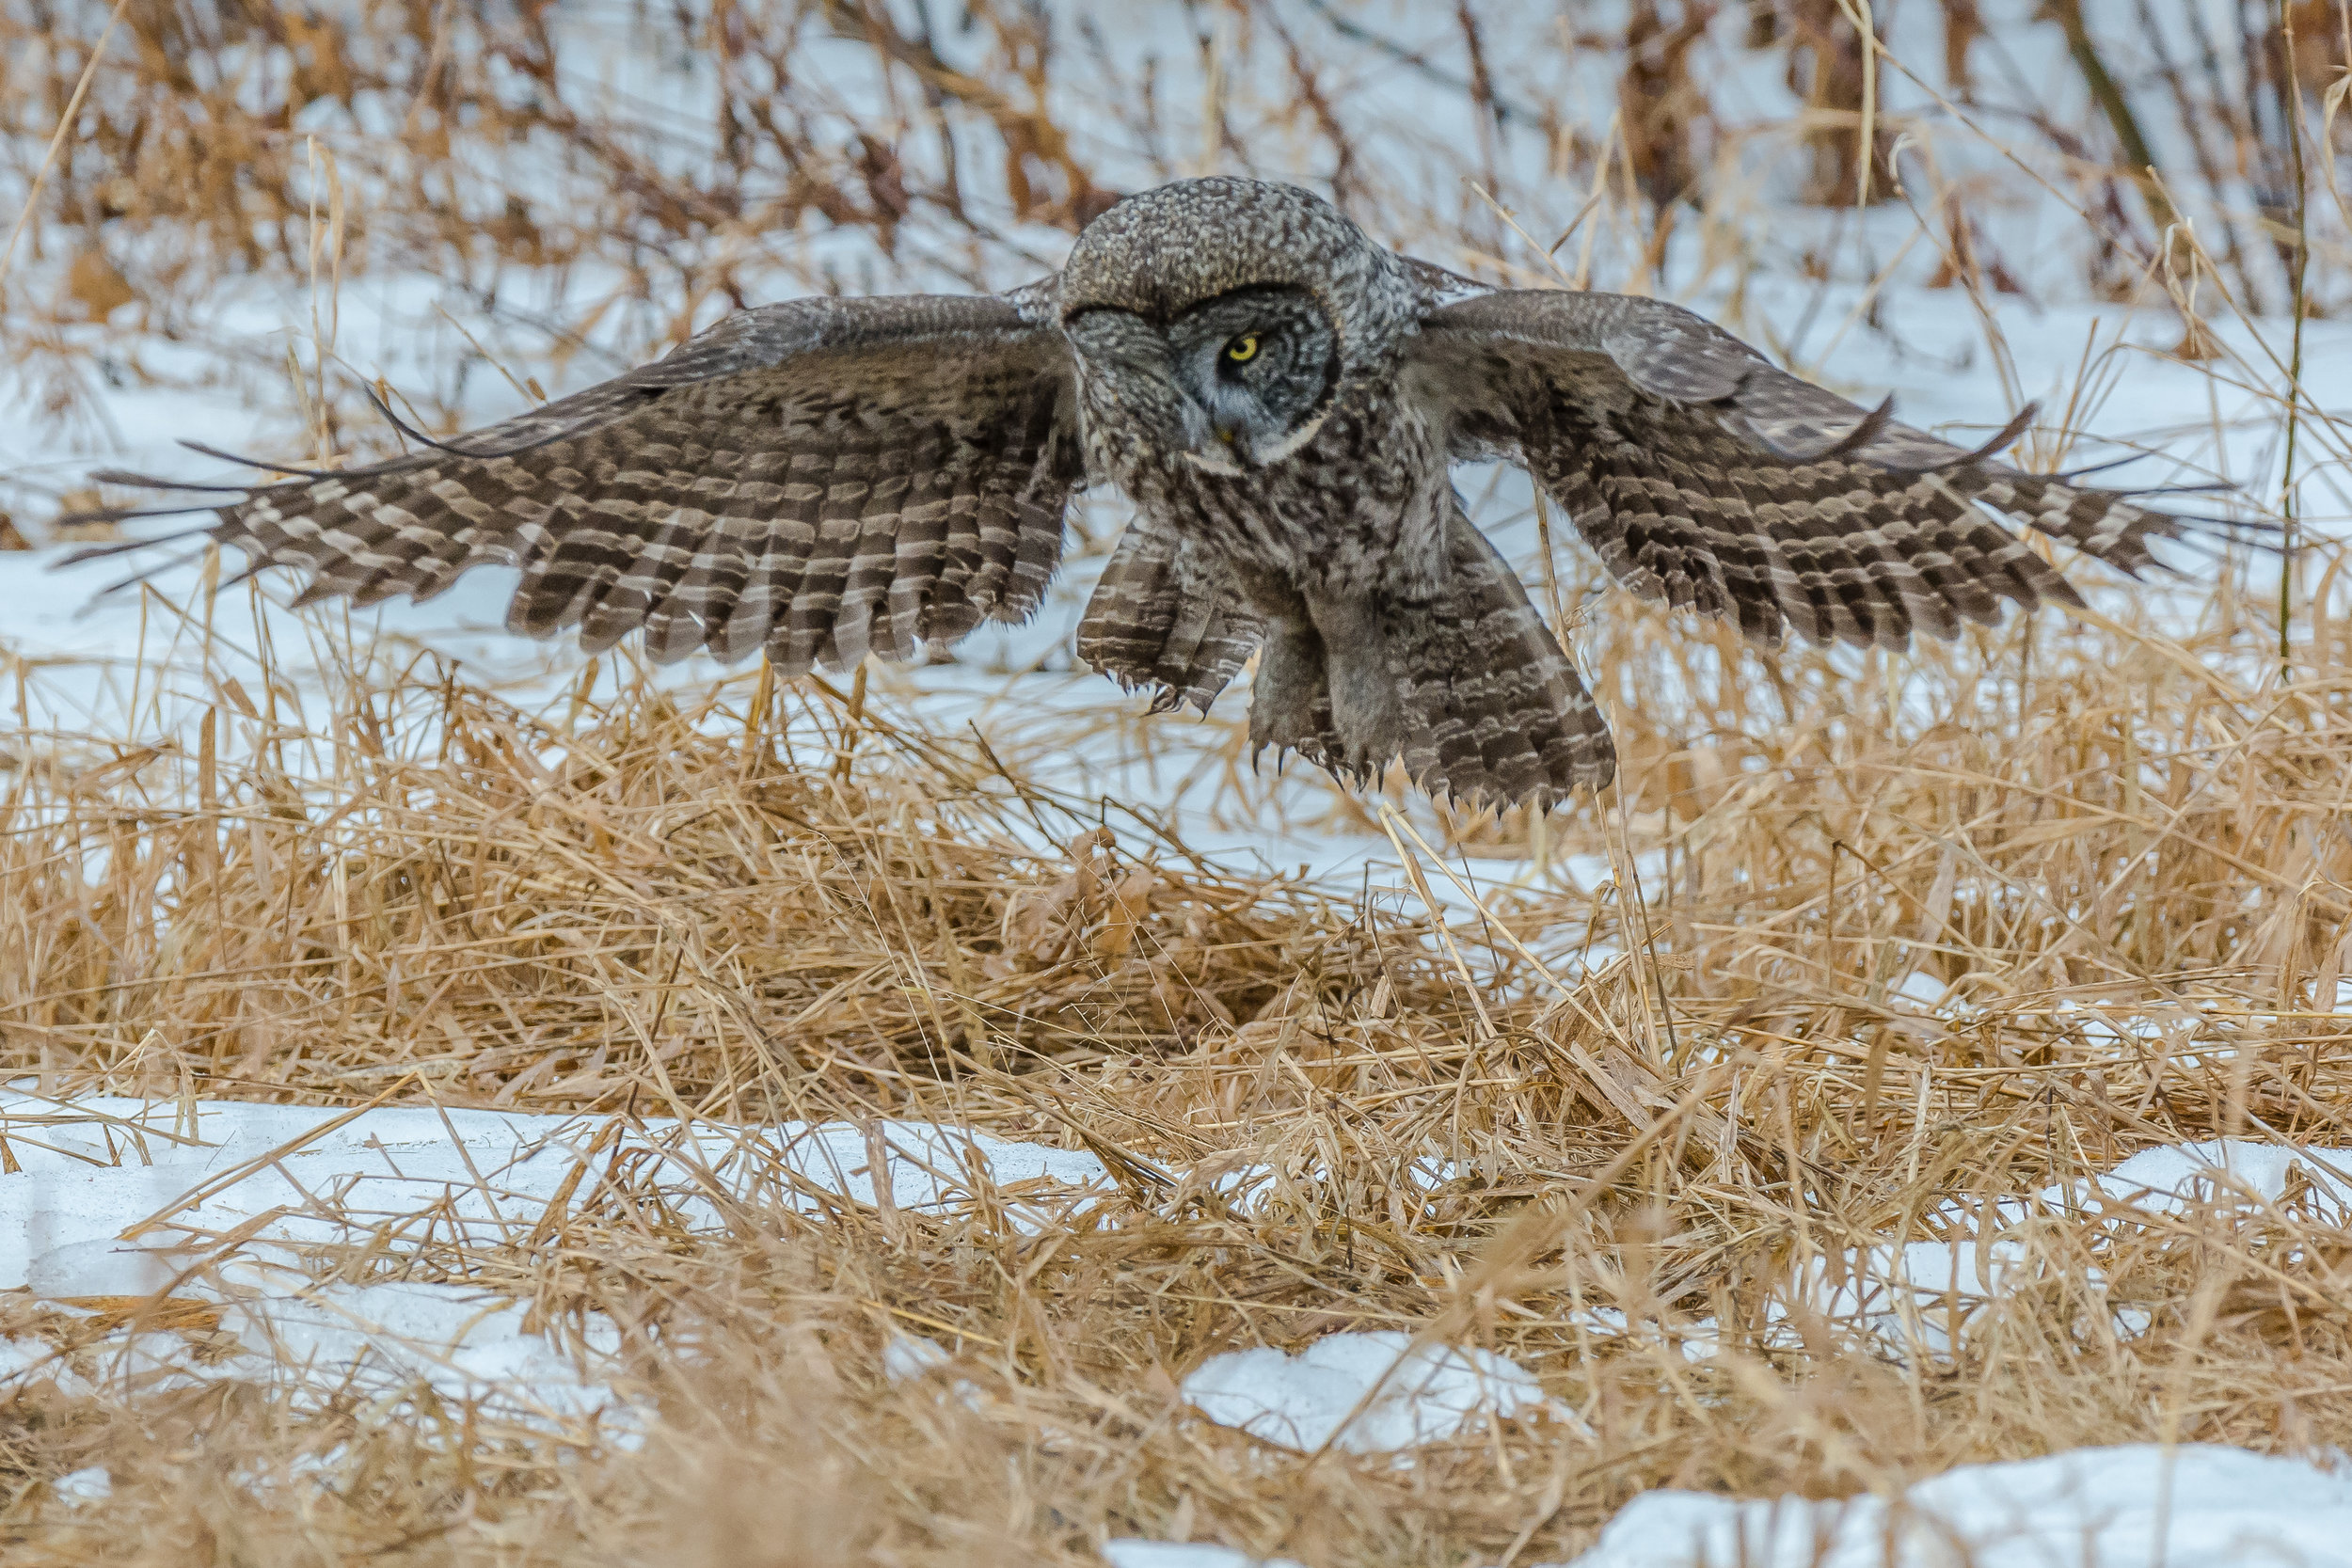 Incoming  !!   I drove back north to see the great gray owl again today,  he did not disappoint !!